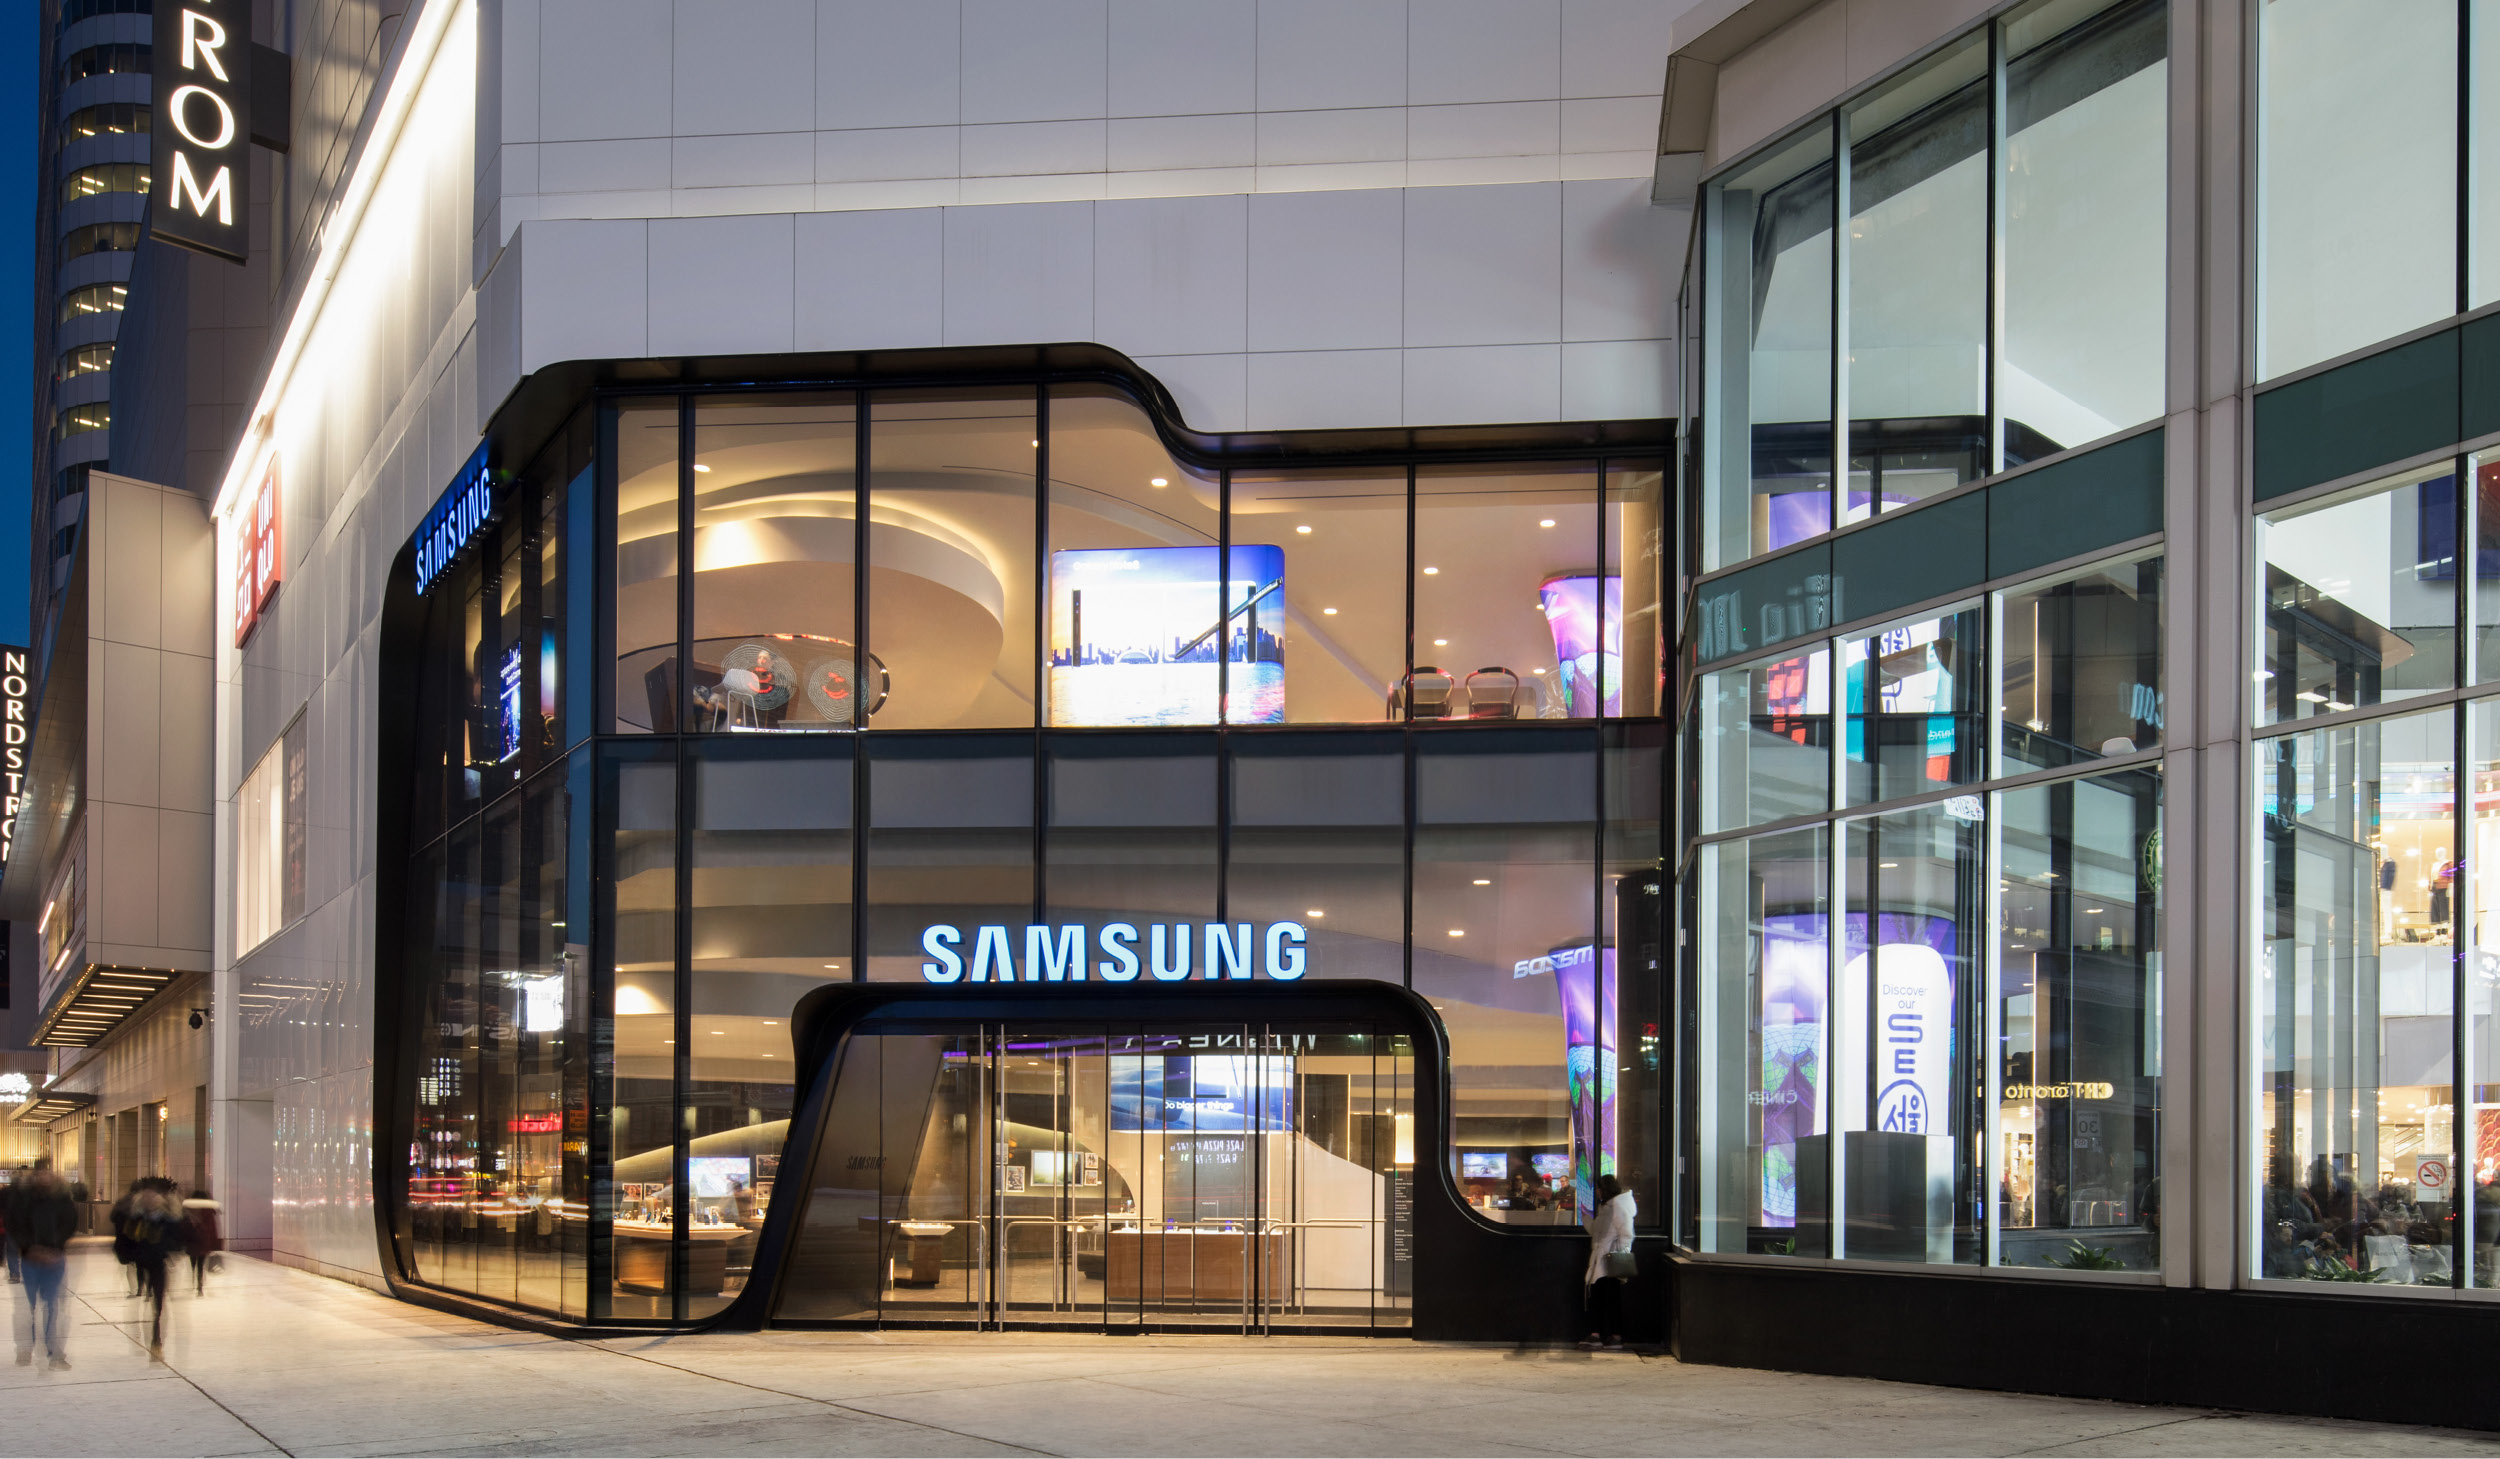 exterior of the Samsung Experience Store at the Eaton Centre, taken from the sidewalk at dusk